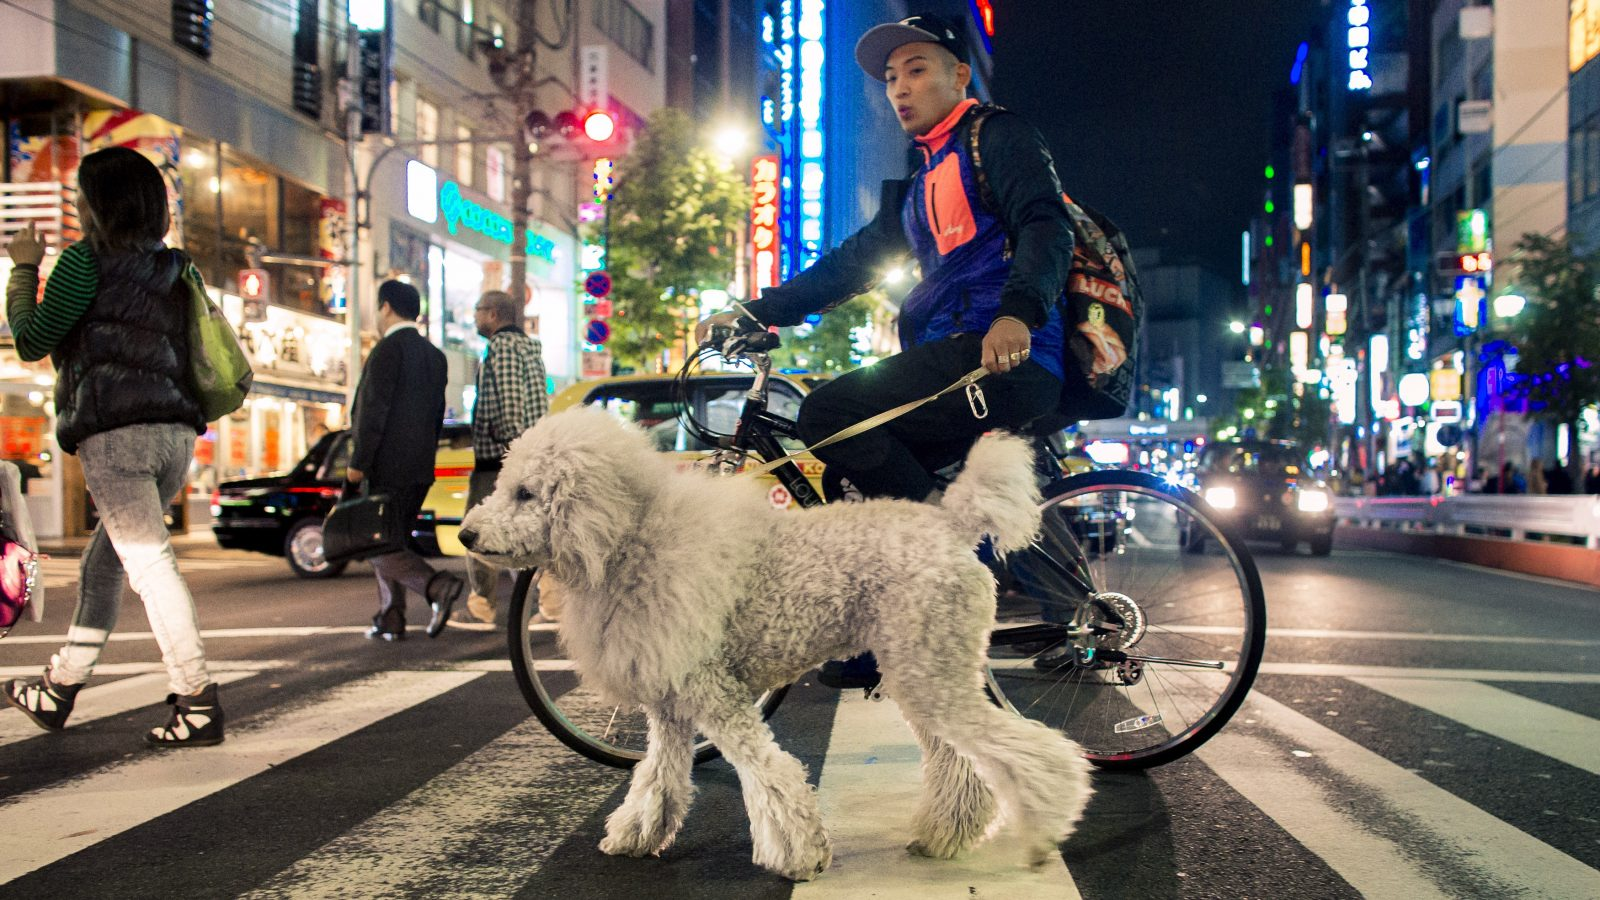 A man on a bike leads a dog across a pedestrian crossing in the Roppongi district in central Tokyo